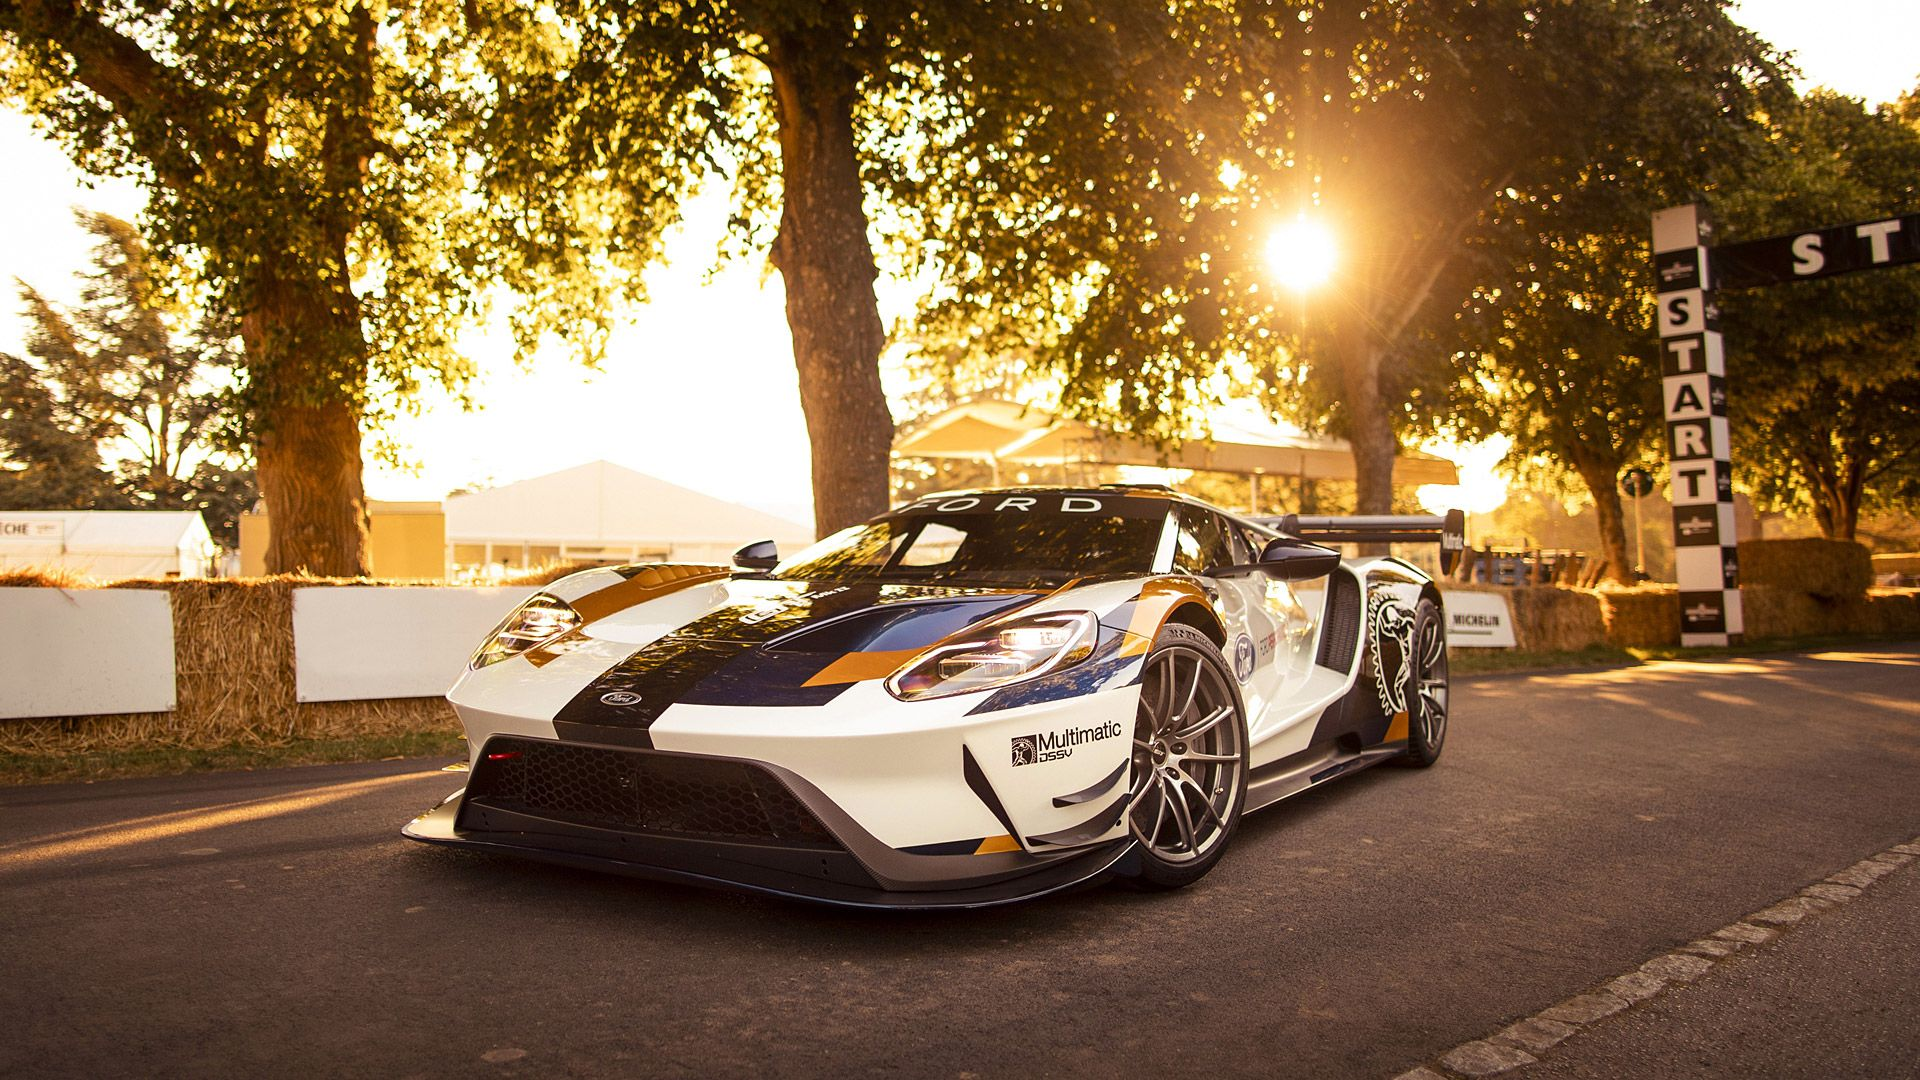 2020 Ford Gt Mk Ii Wallpapers Wsupercars Ford Gt Ford Ford Mustang Wallpaper